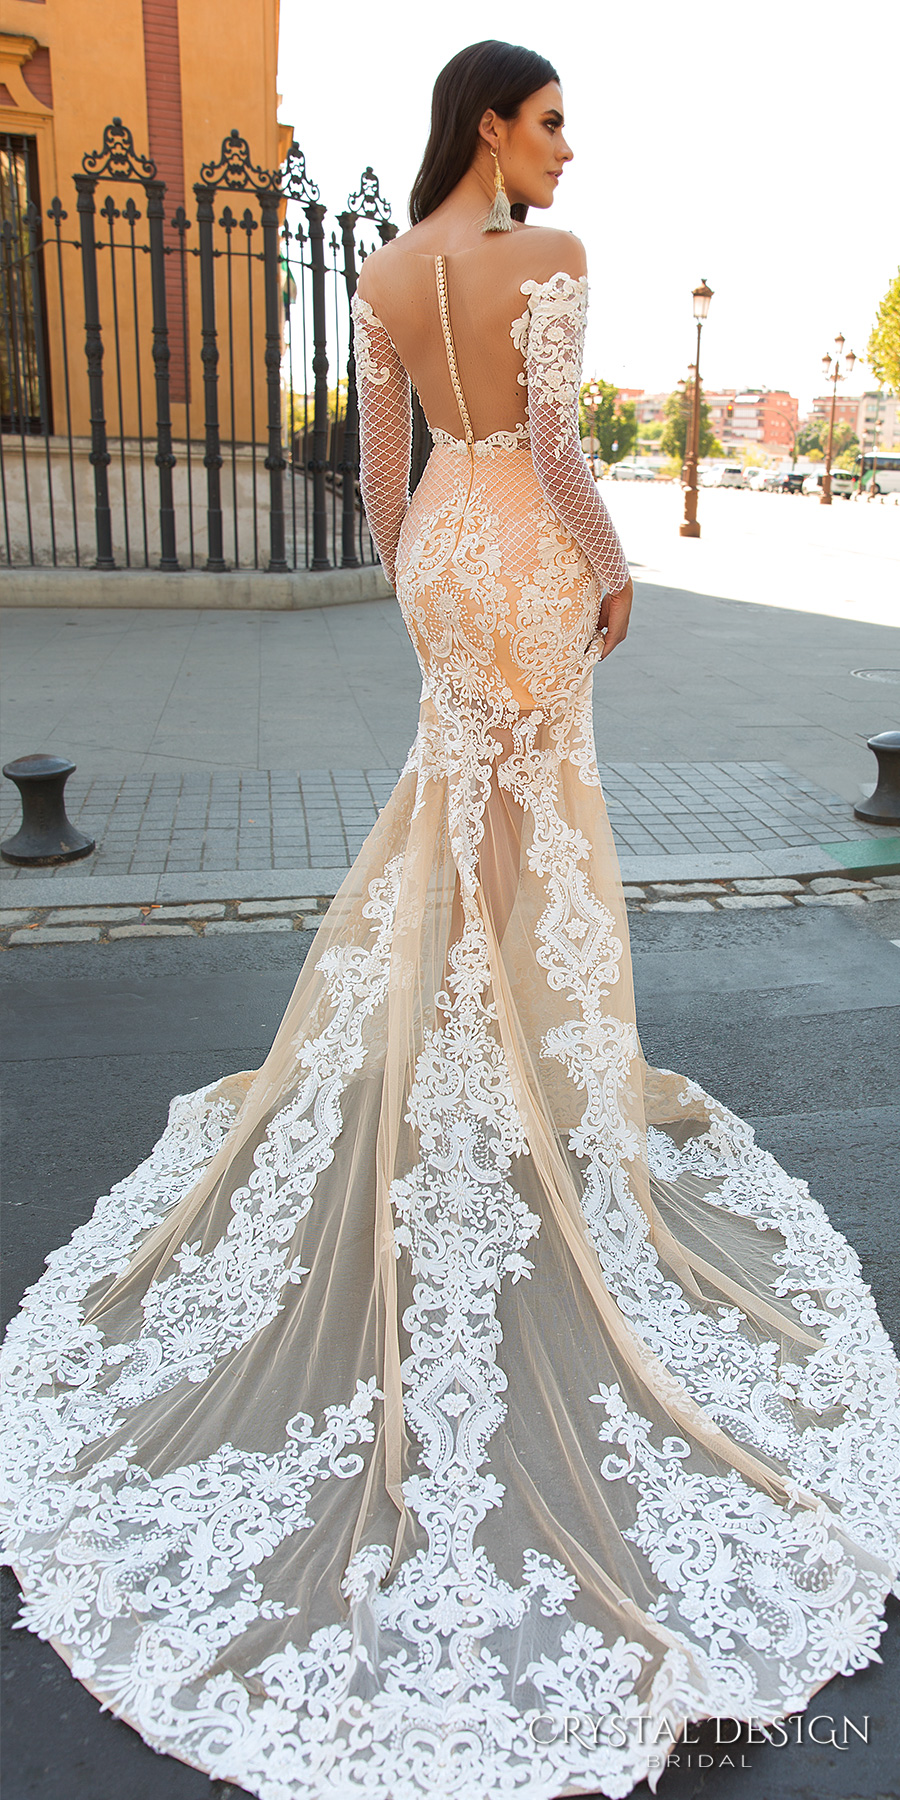 ed5238bf173f crystal design 2017 bridal long sleeves off the shoulder sweetheart  neckline elegant fit and flare lace